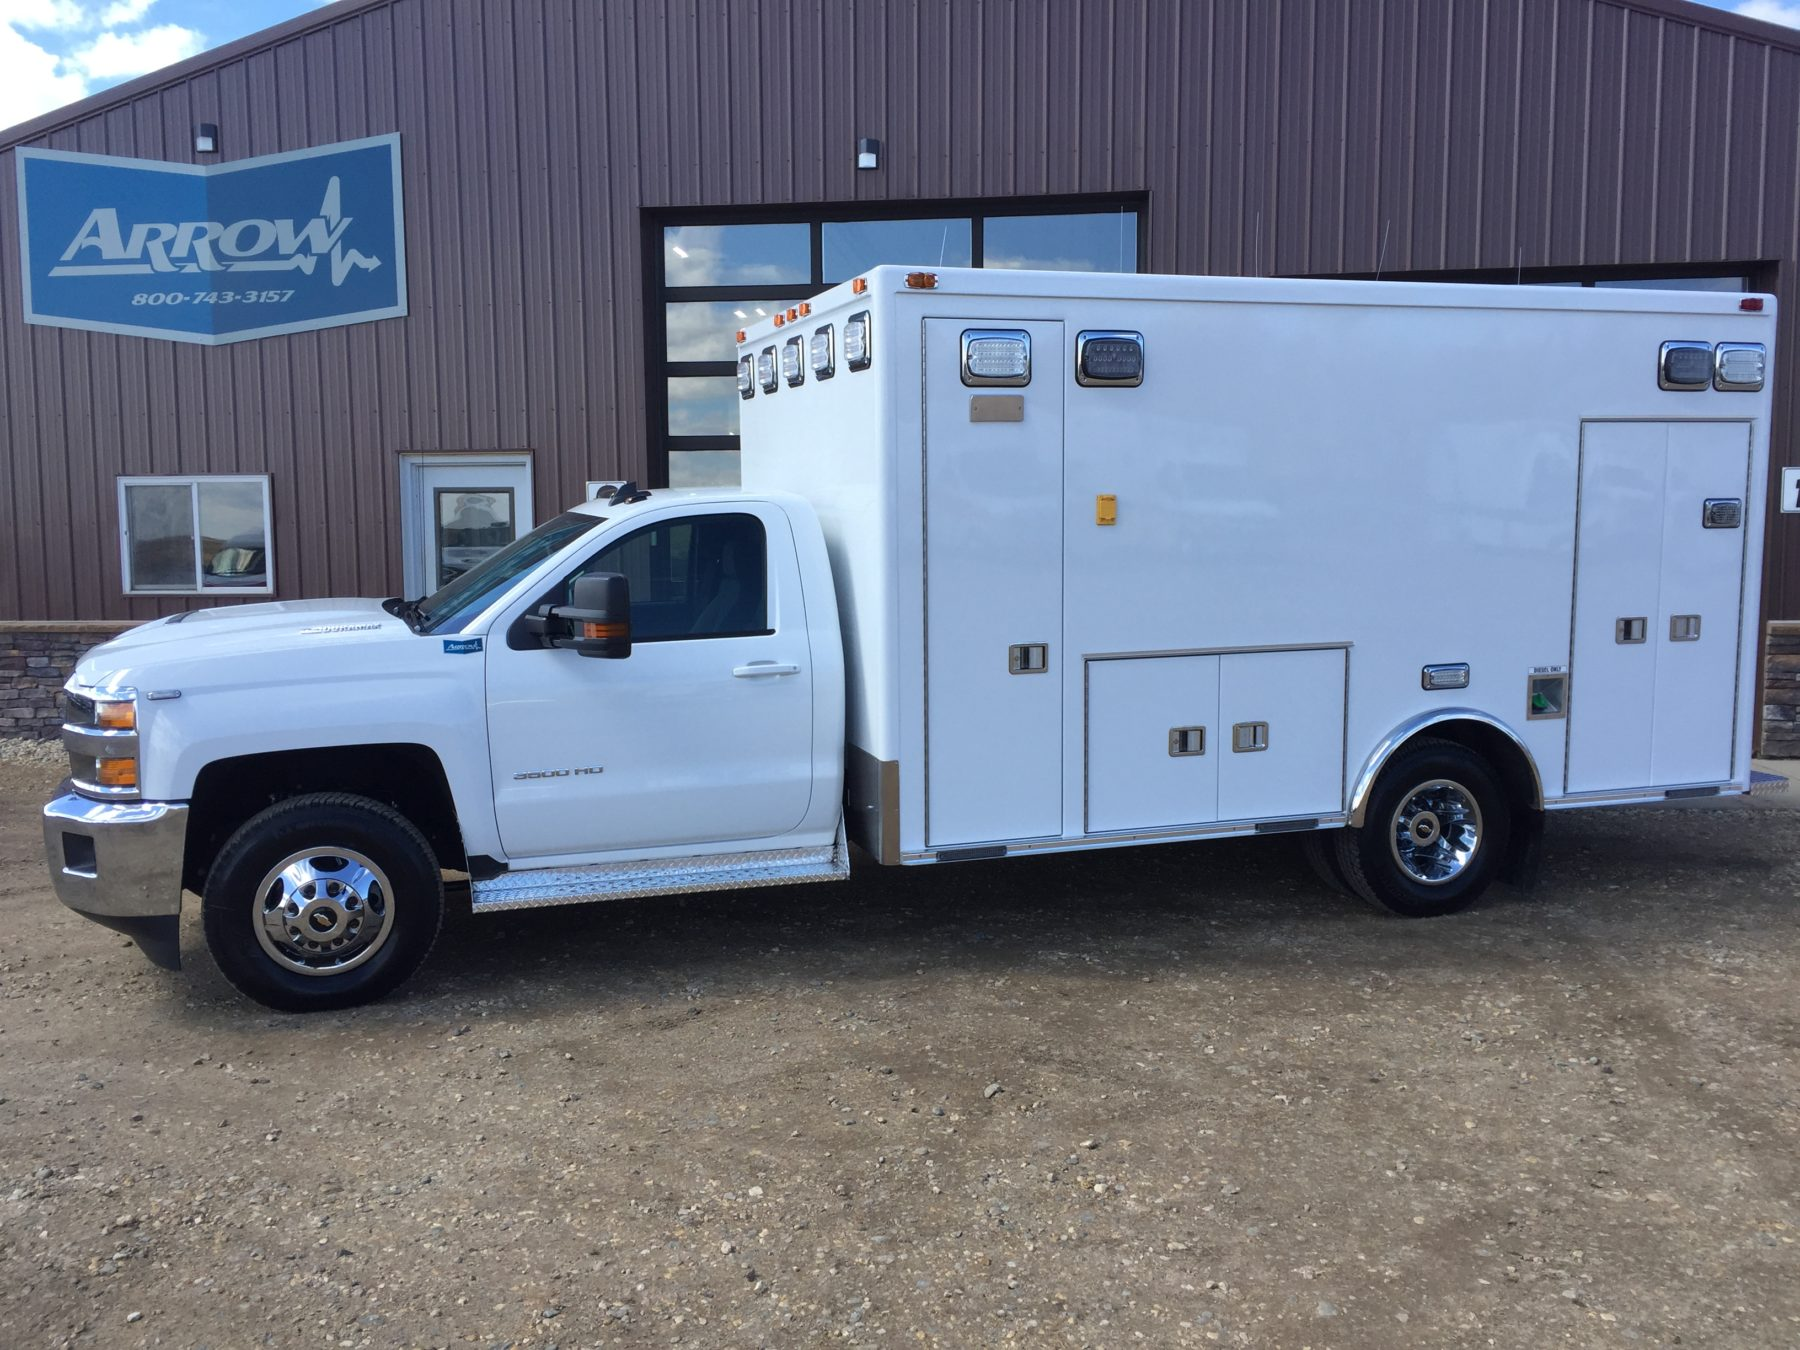 2017 Chevrolet K3500 4x4 Type 1 Ambulance For Sale – Picture 3